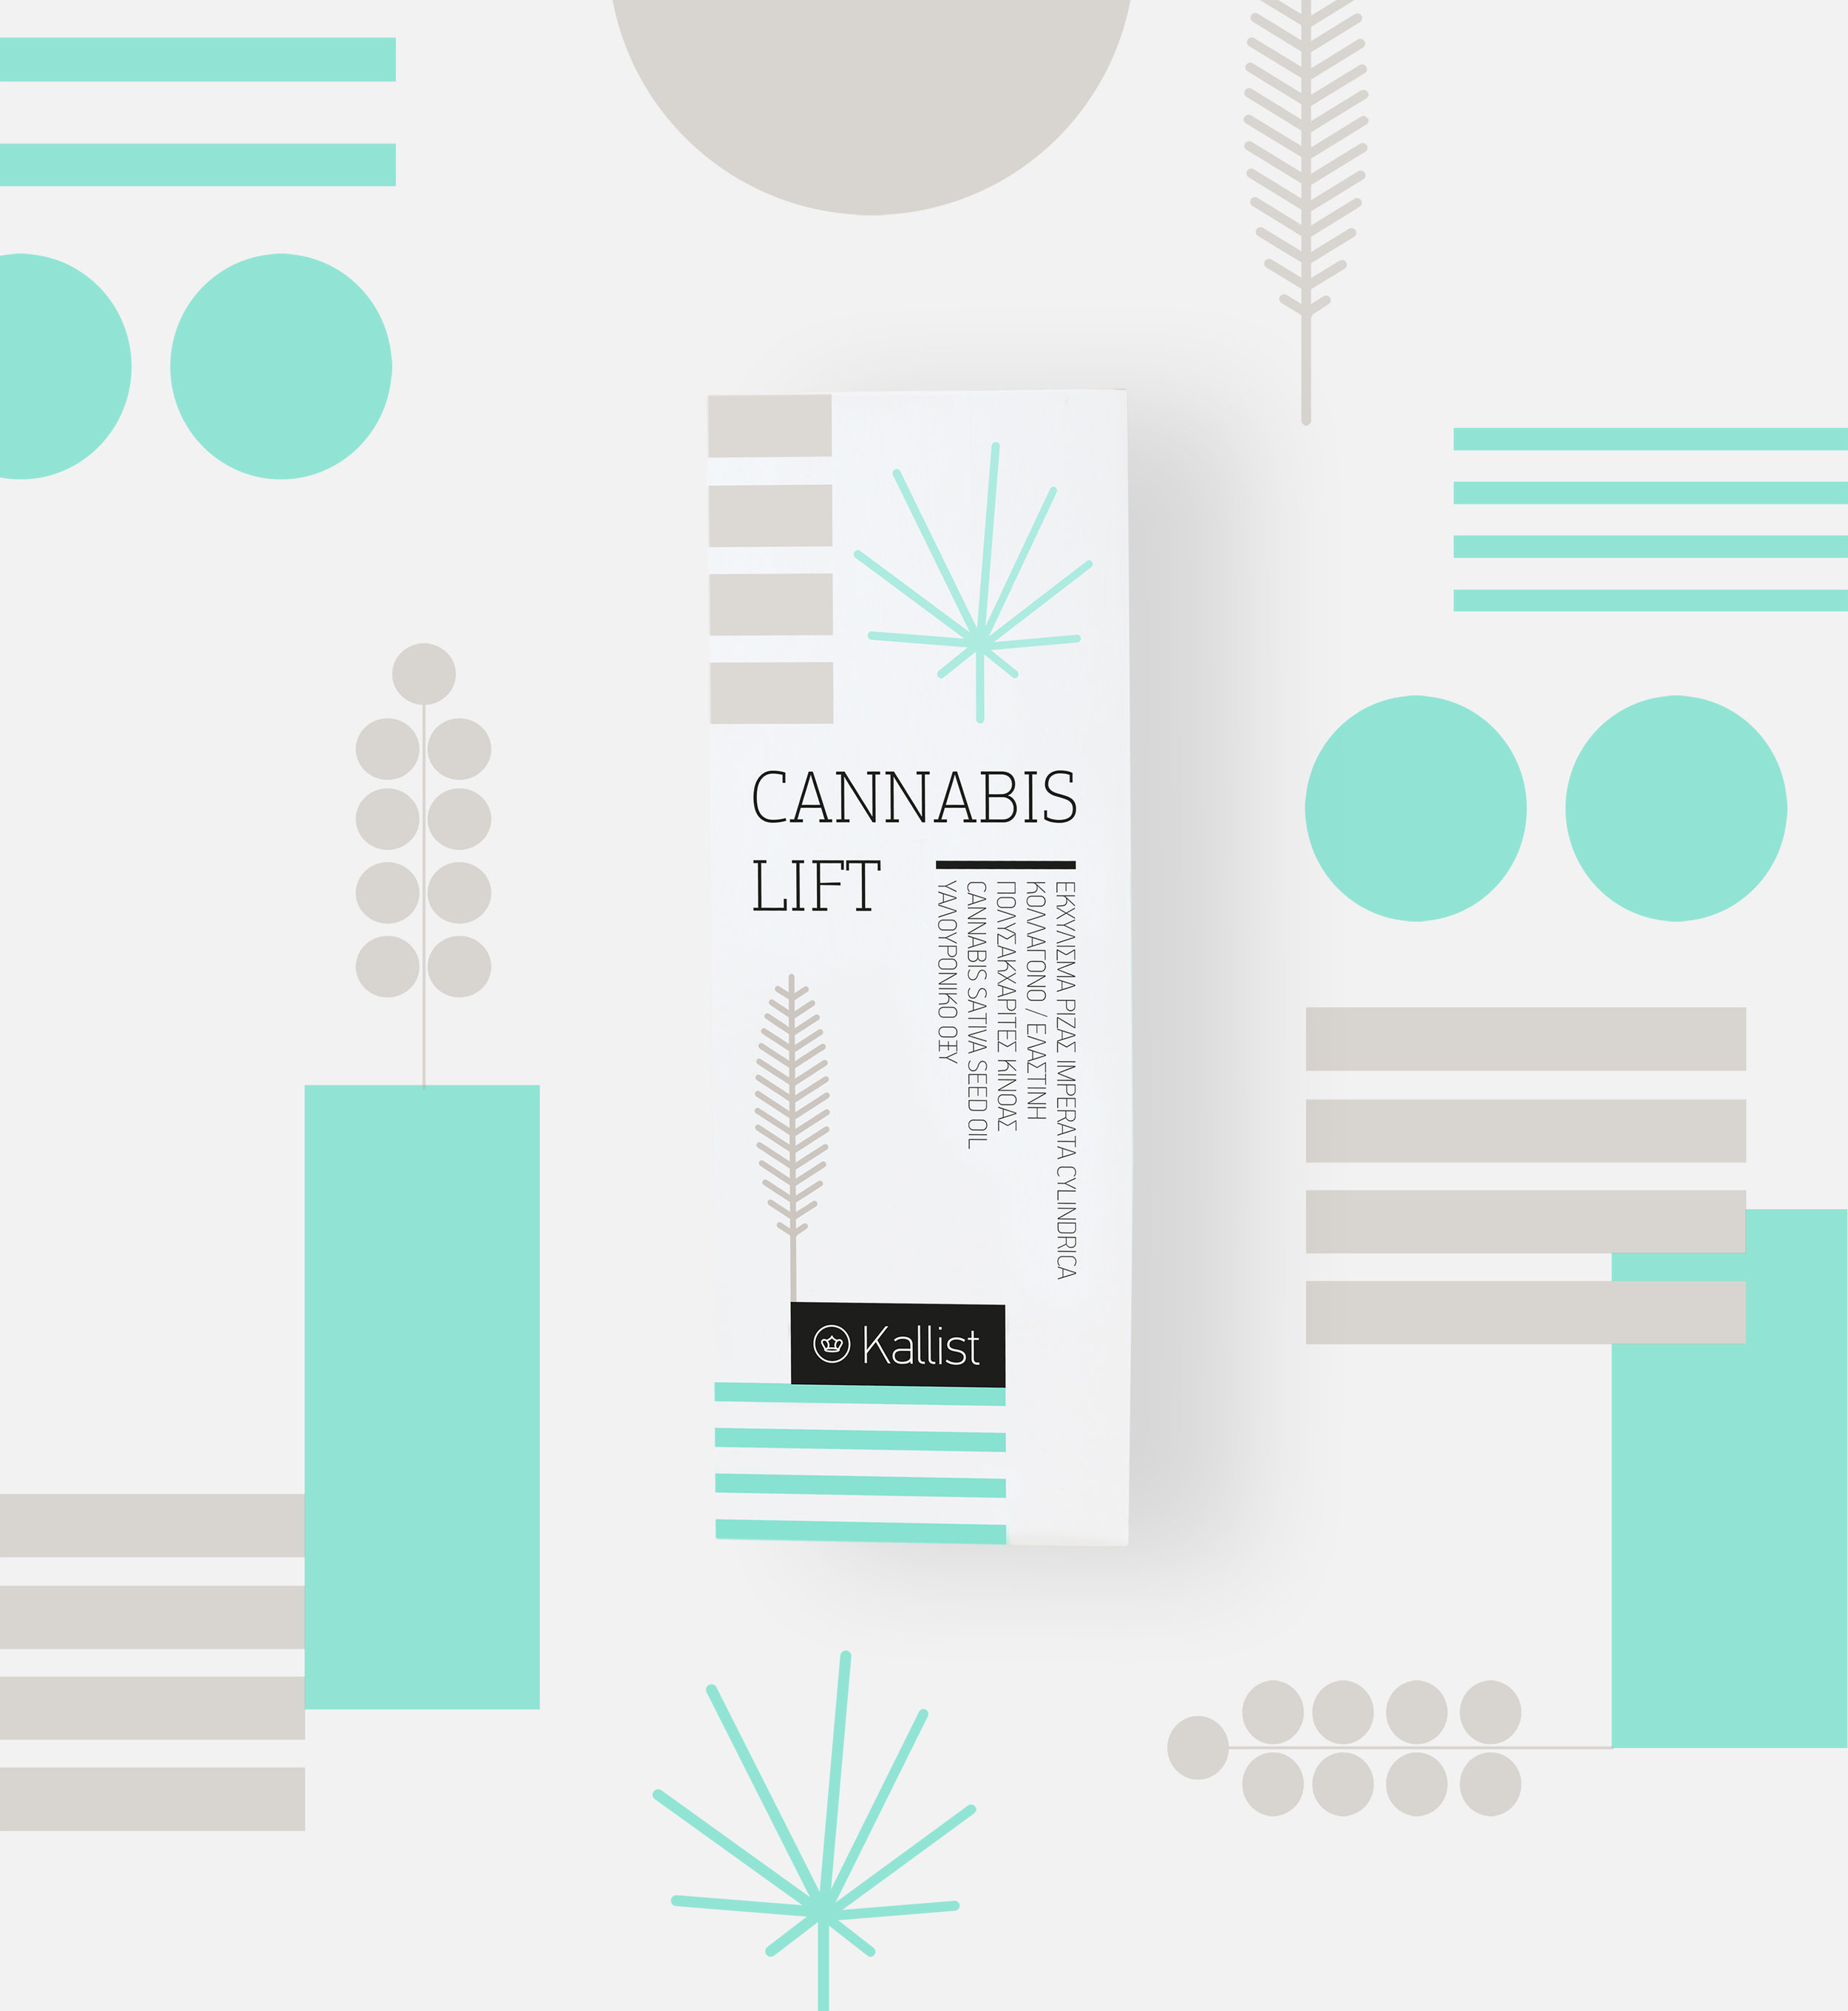 Brand and Packaging Design for Face Lift Cream CANNABIS LIFT / World Brand and Packaging Design Society